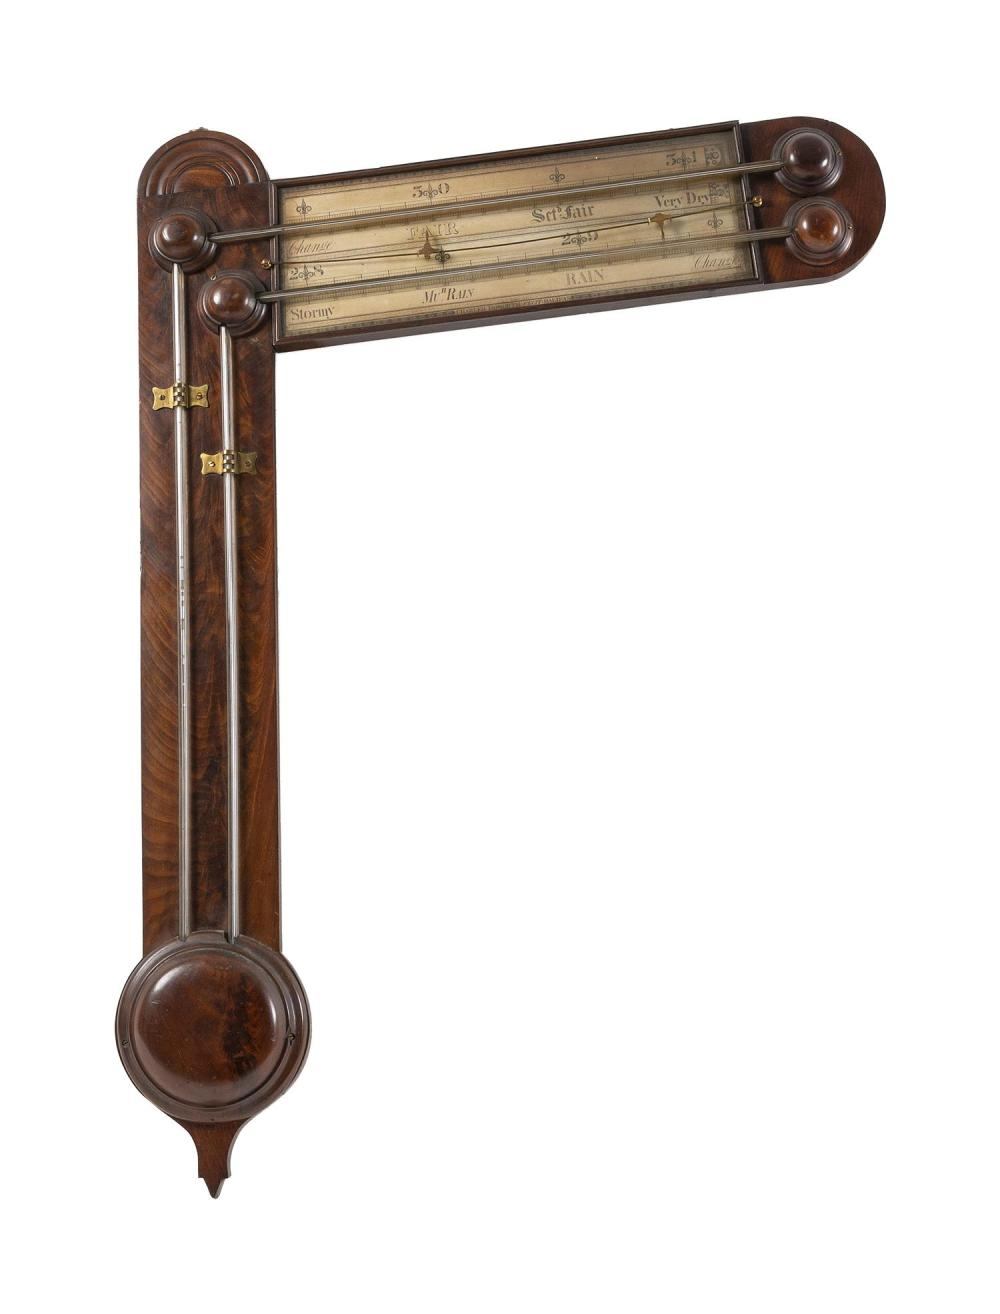 """VICTORIAN ANGLE BAROMETER BY CHARLES HOWORTH Signed on the paper scales """"Charles Howorth - Fecit - Halifax"""". Burled mahogany frame i..."""